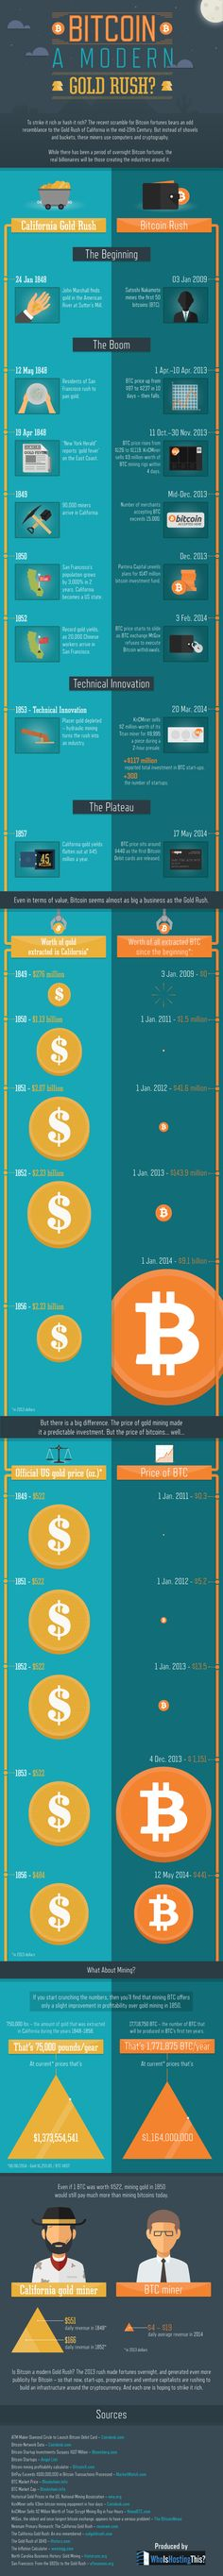 Bitcoin Rush Compared to California Gold Rush in 19th Century - American Hard Assets